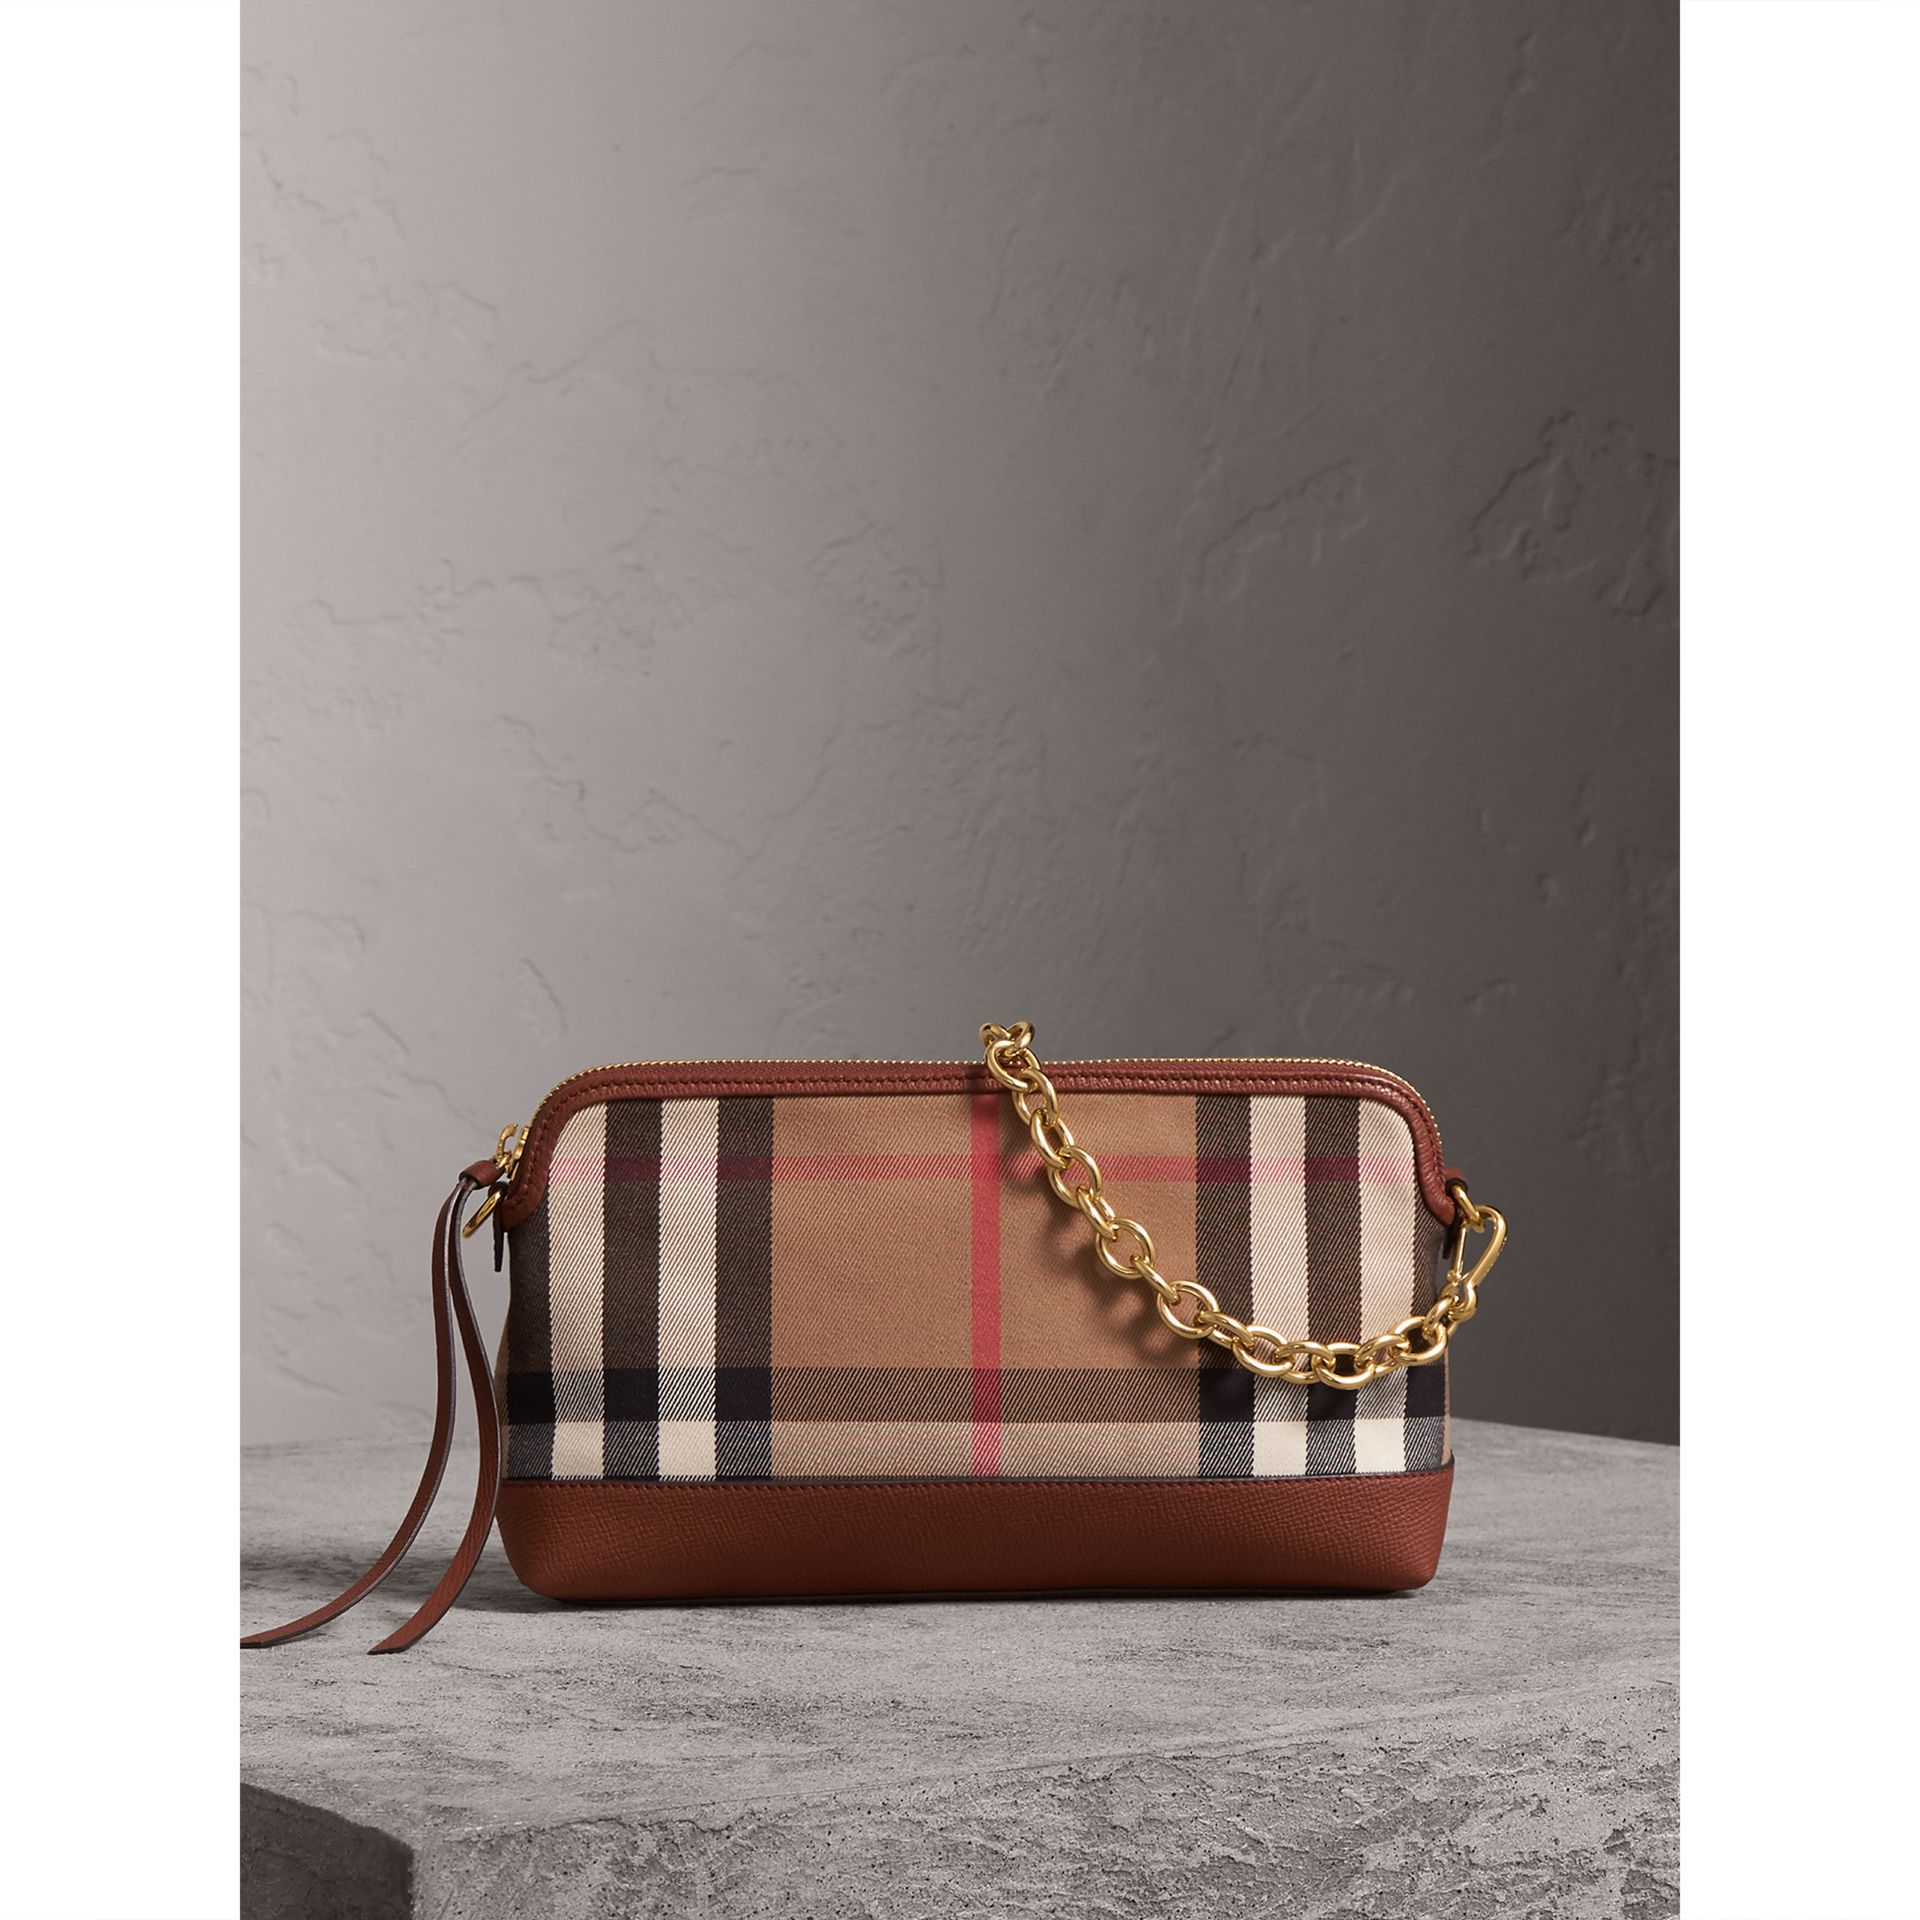 House Check and Leather Clutch Bag in Tan - Women | Burberry Canada - gallery image 1